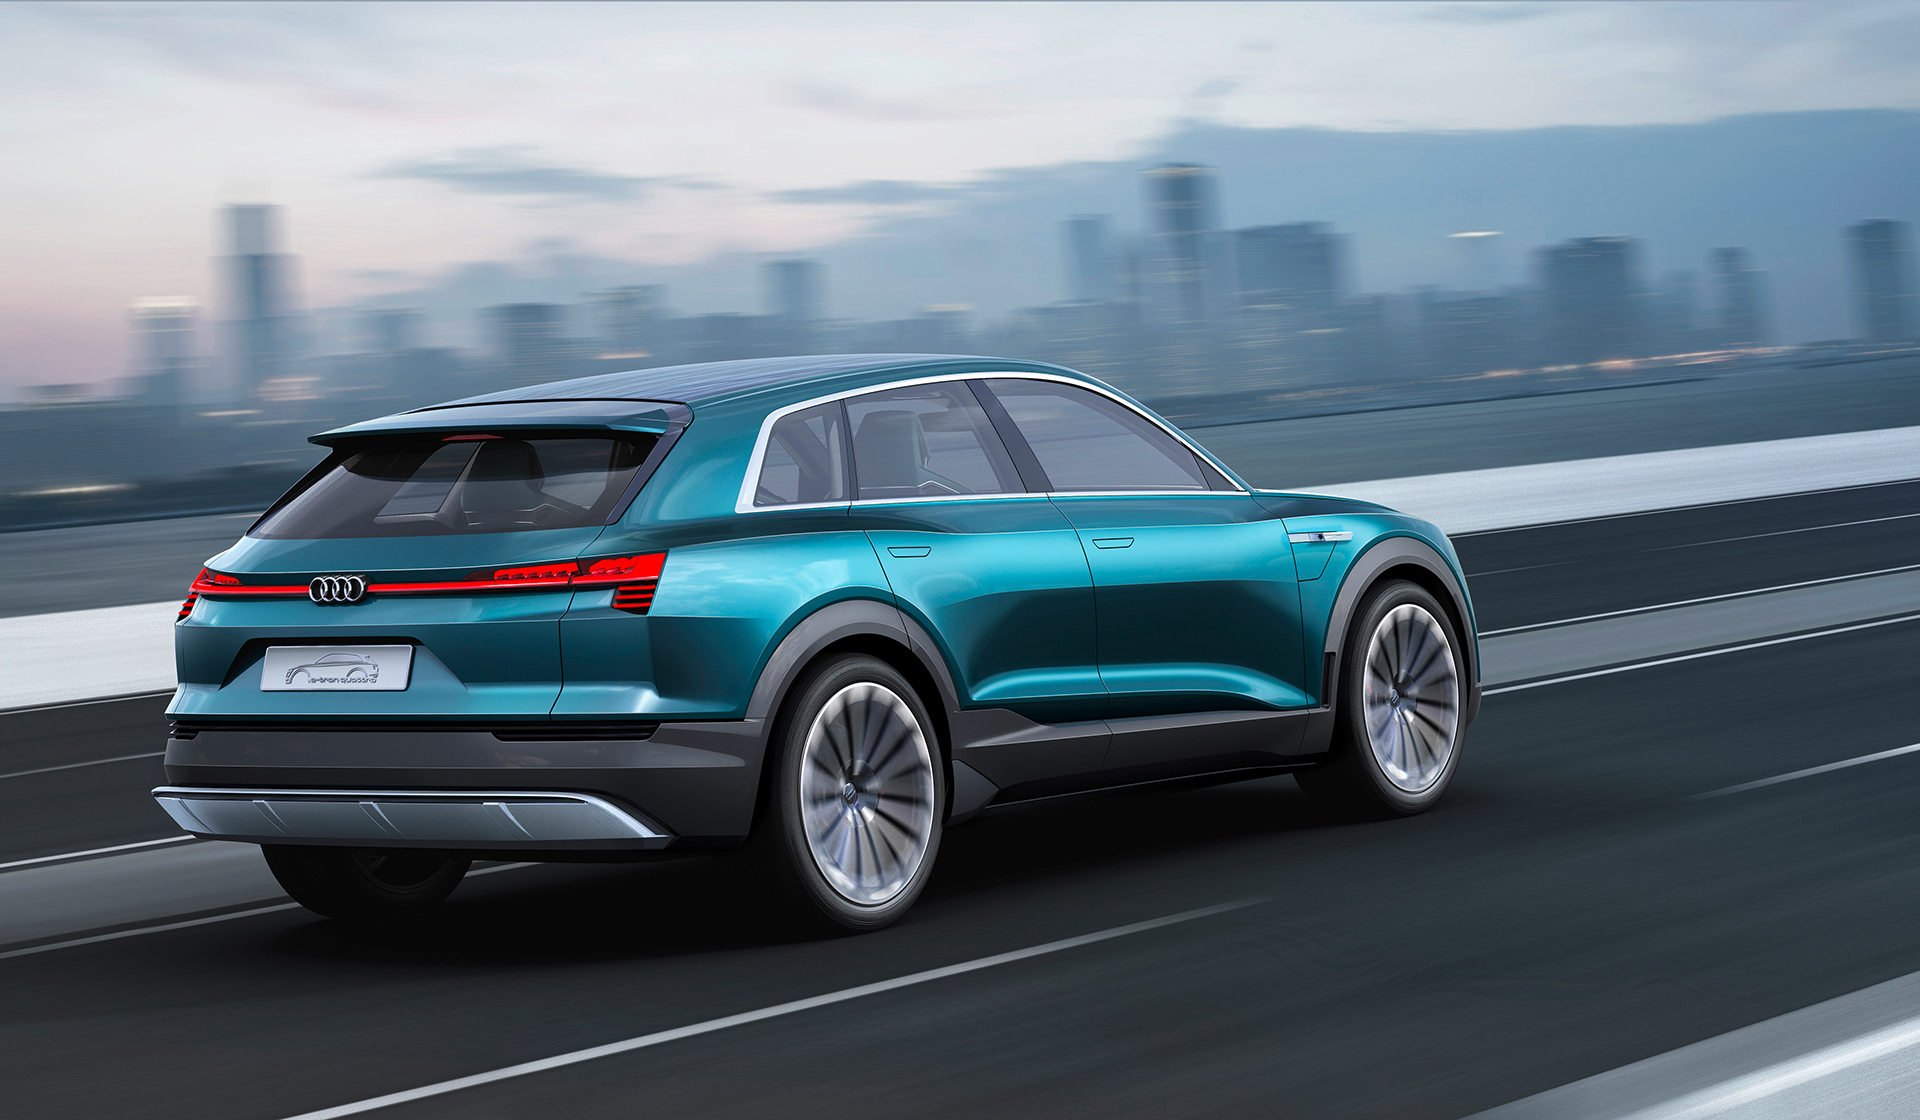 Audi e-tron quattro concept - 2016 - rear side-face / profil arrière - on road / sur route